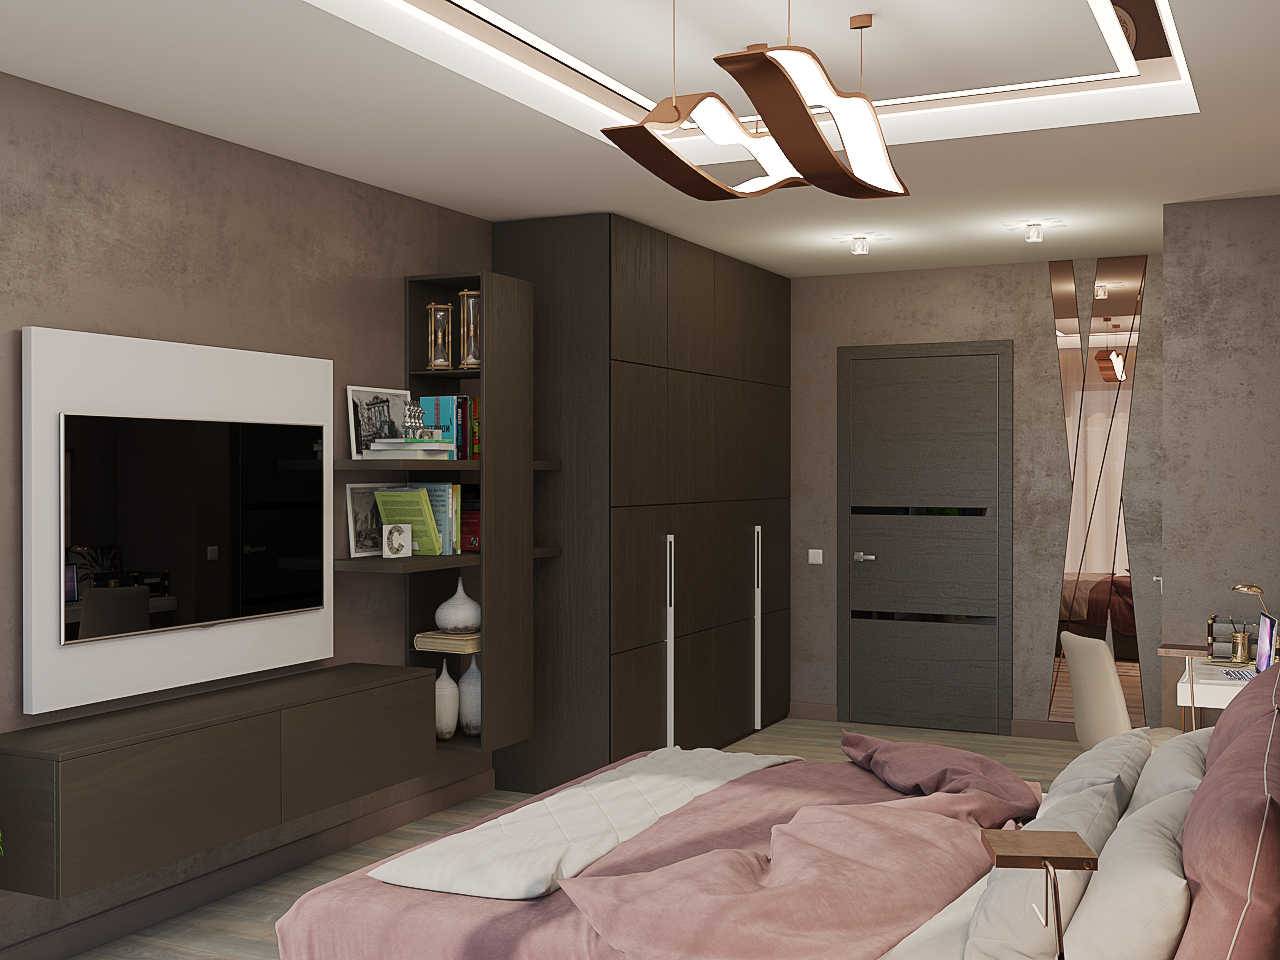 Bedroom in hotel style in 3d max vray 3.0 image